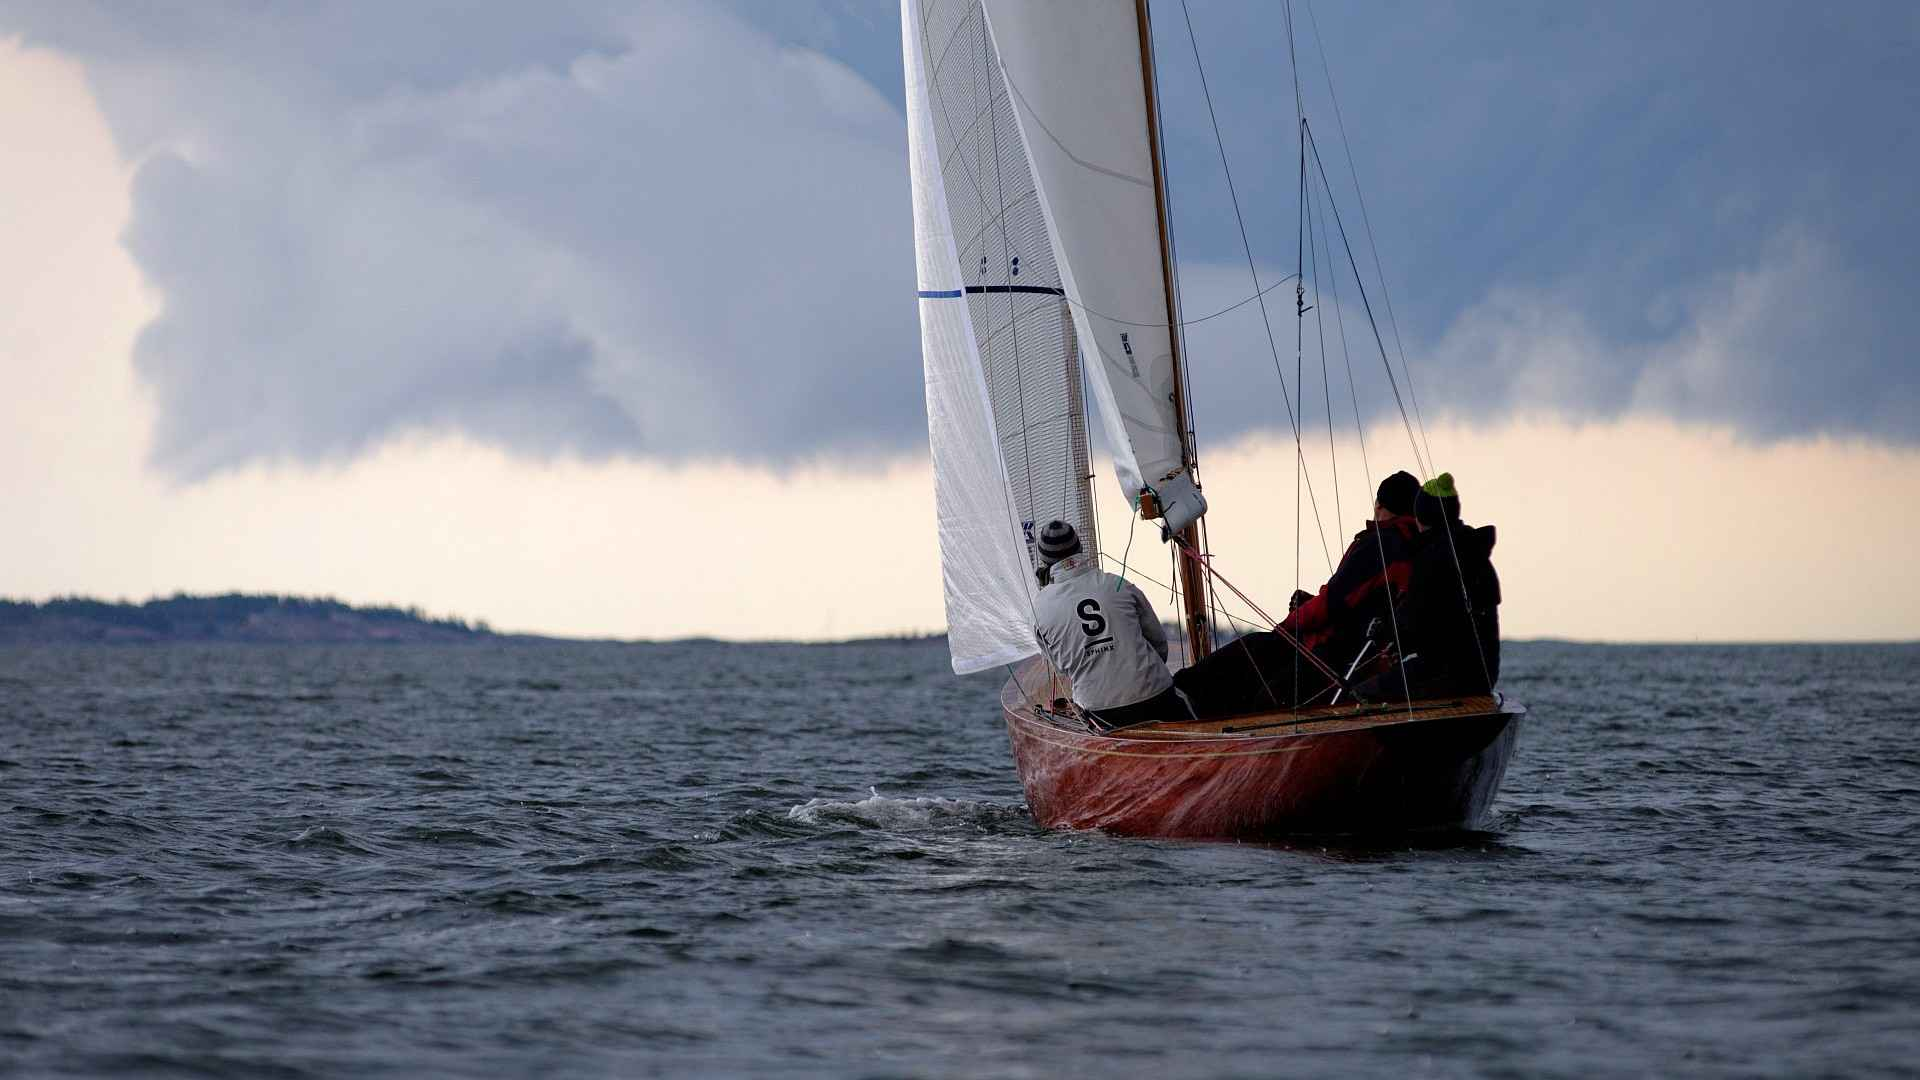 First time in many years, own class championship weekend for the growing Finnish 5m fleet. Still some being renovated, but this class is absolutely growing in Finland. Light wind during the both races, but the approaching rain front gave a dramatic background for photography and some good wind for the sailors at the end.